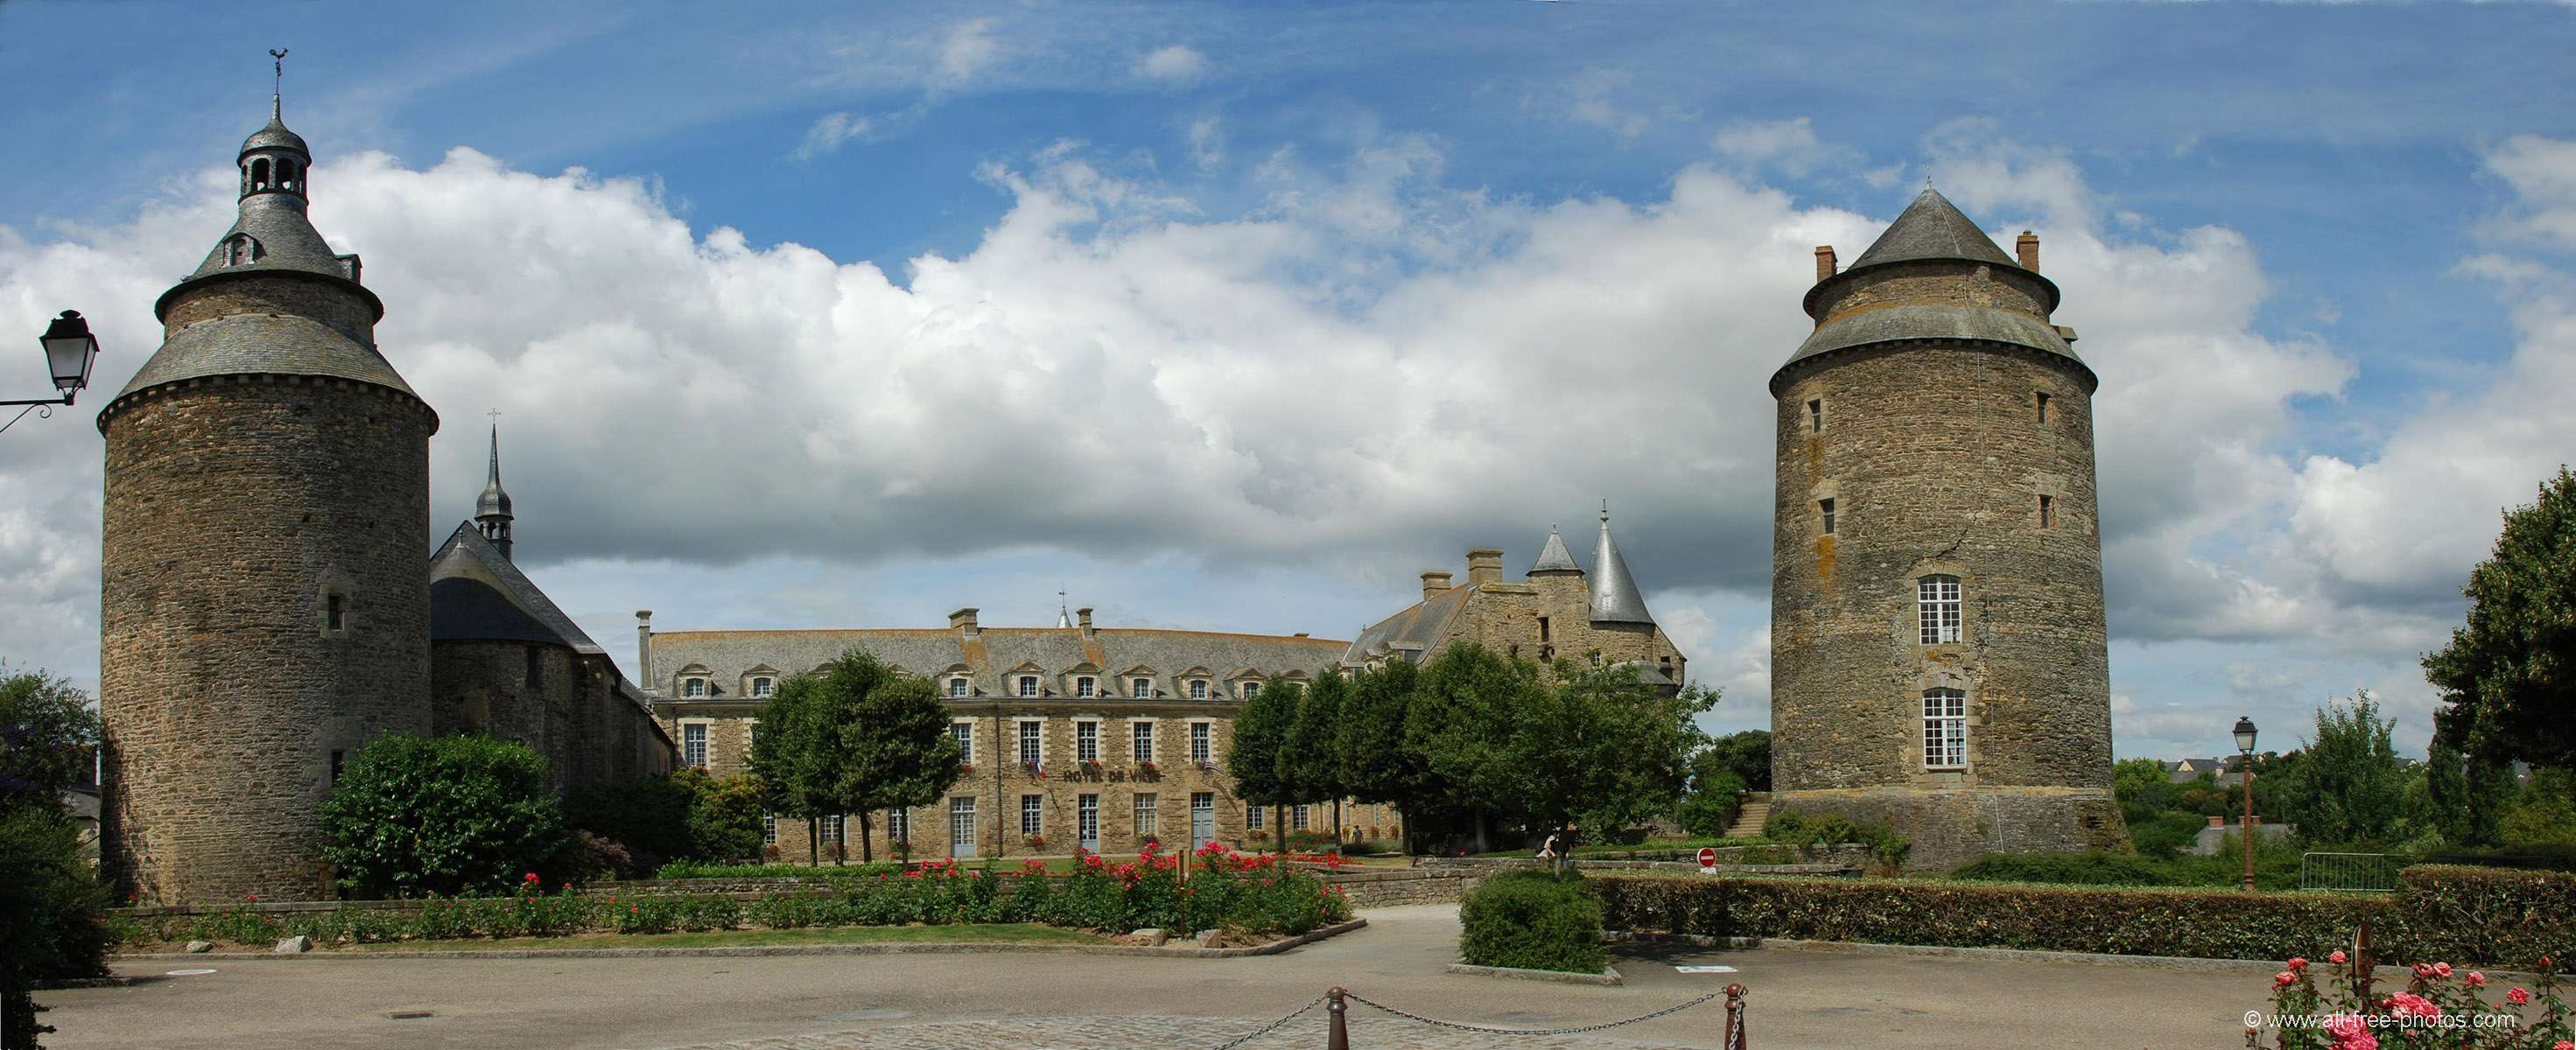 Castle of Chateaugiron - France